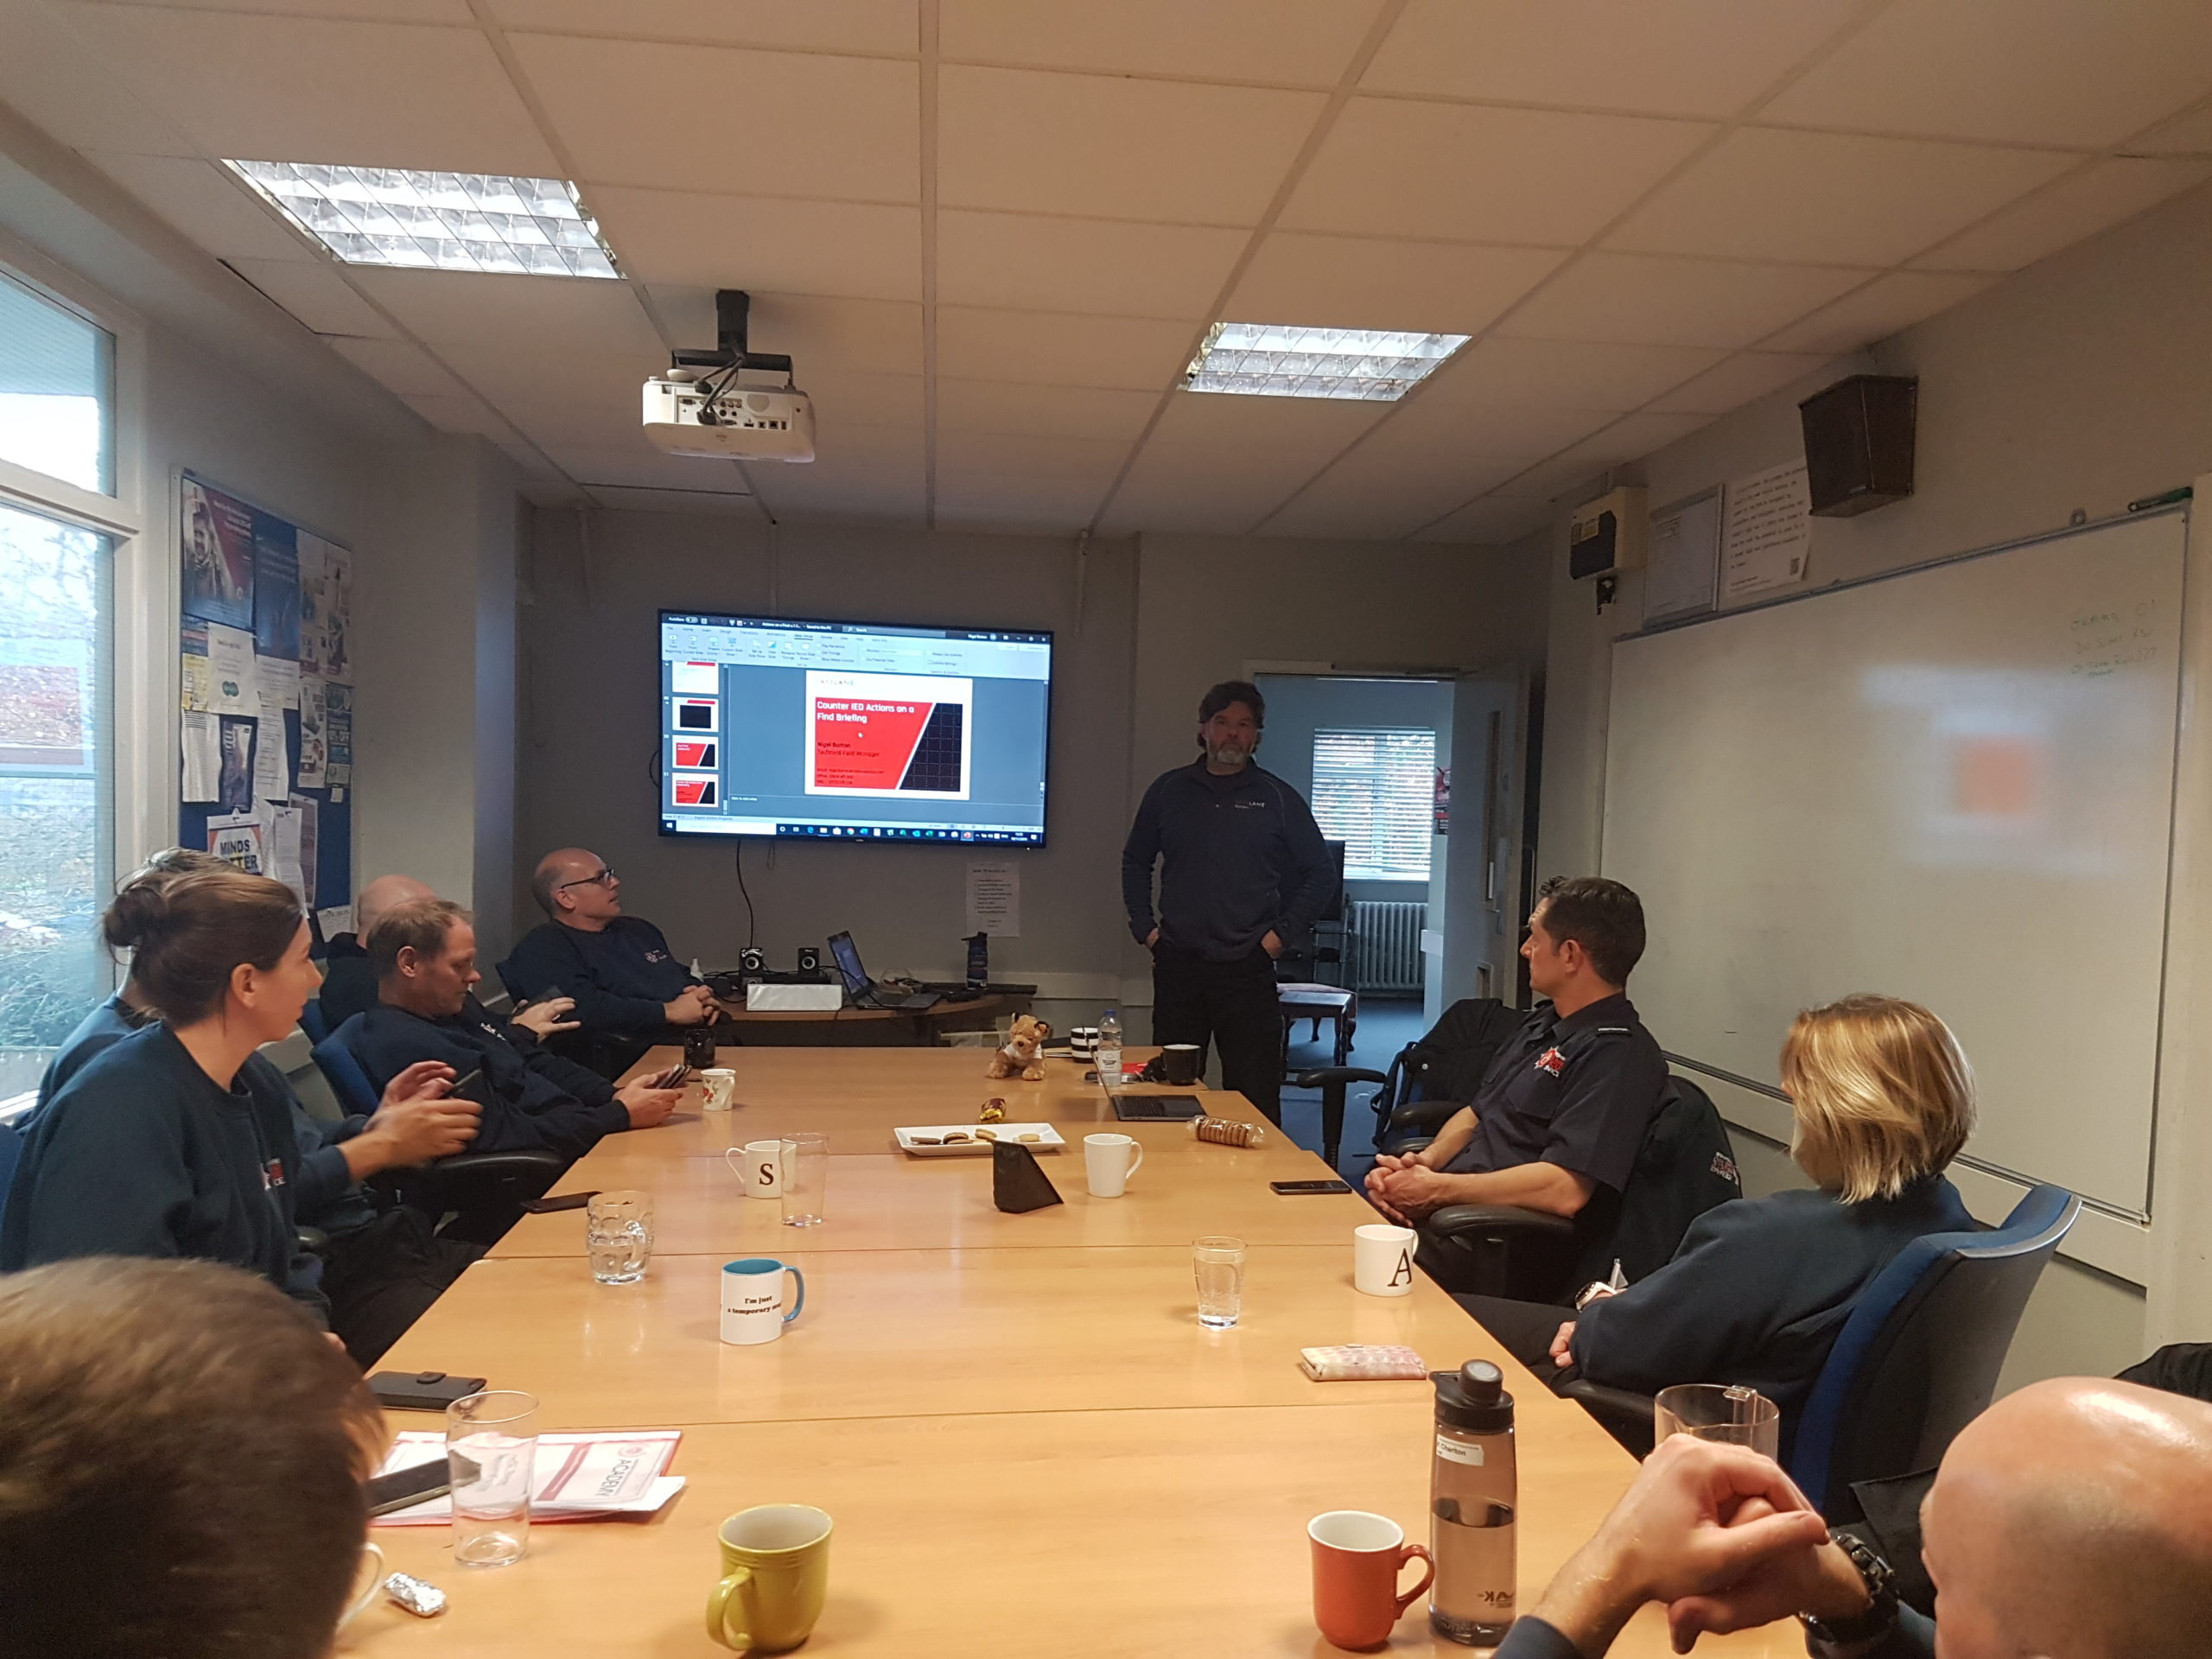 Nigel Barton gives a presentation to the firefighters from Redbridge Fire Station on the IED t